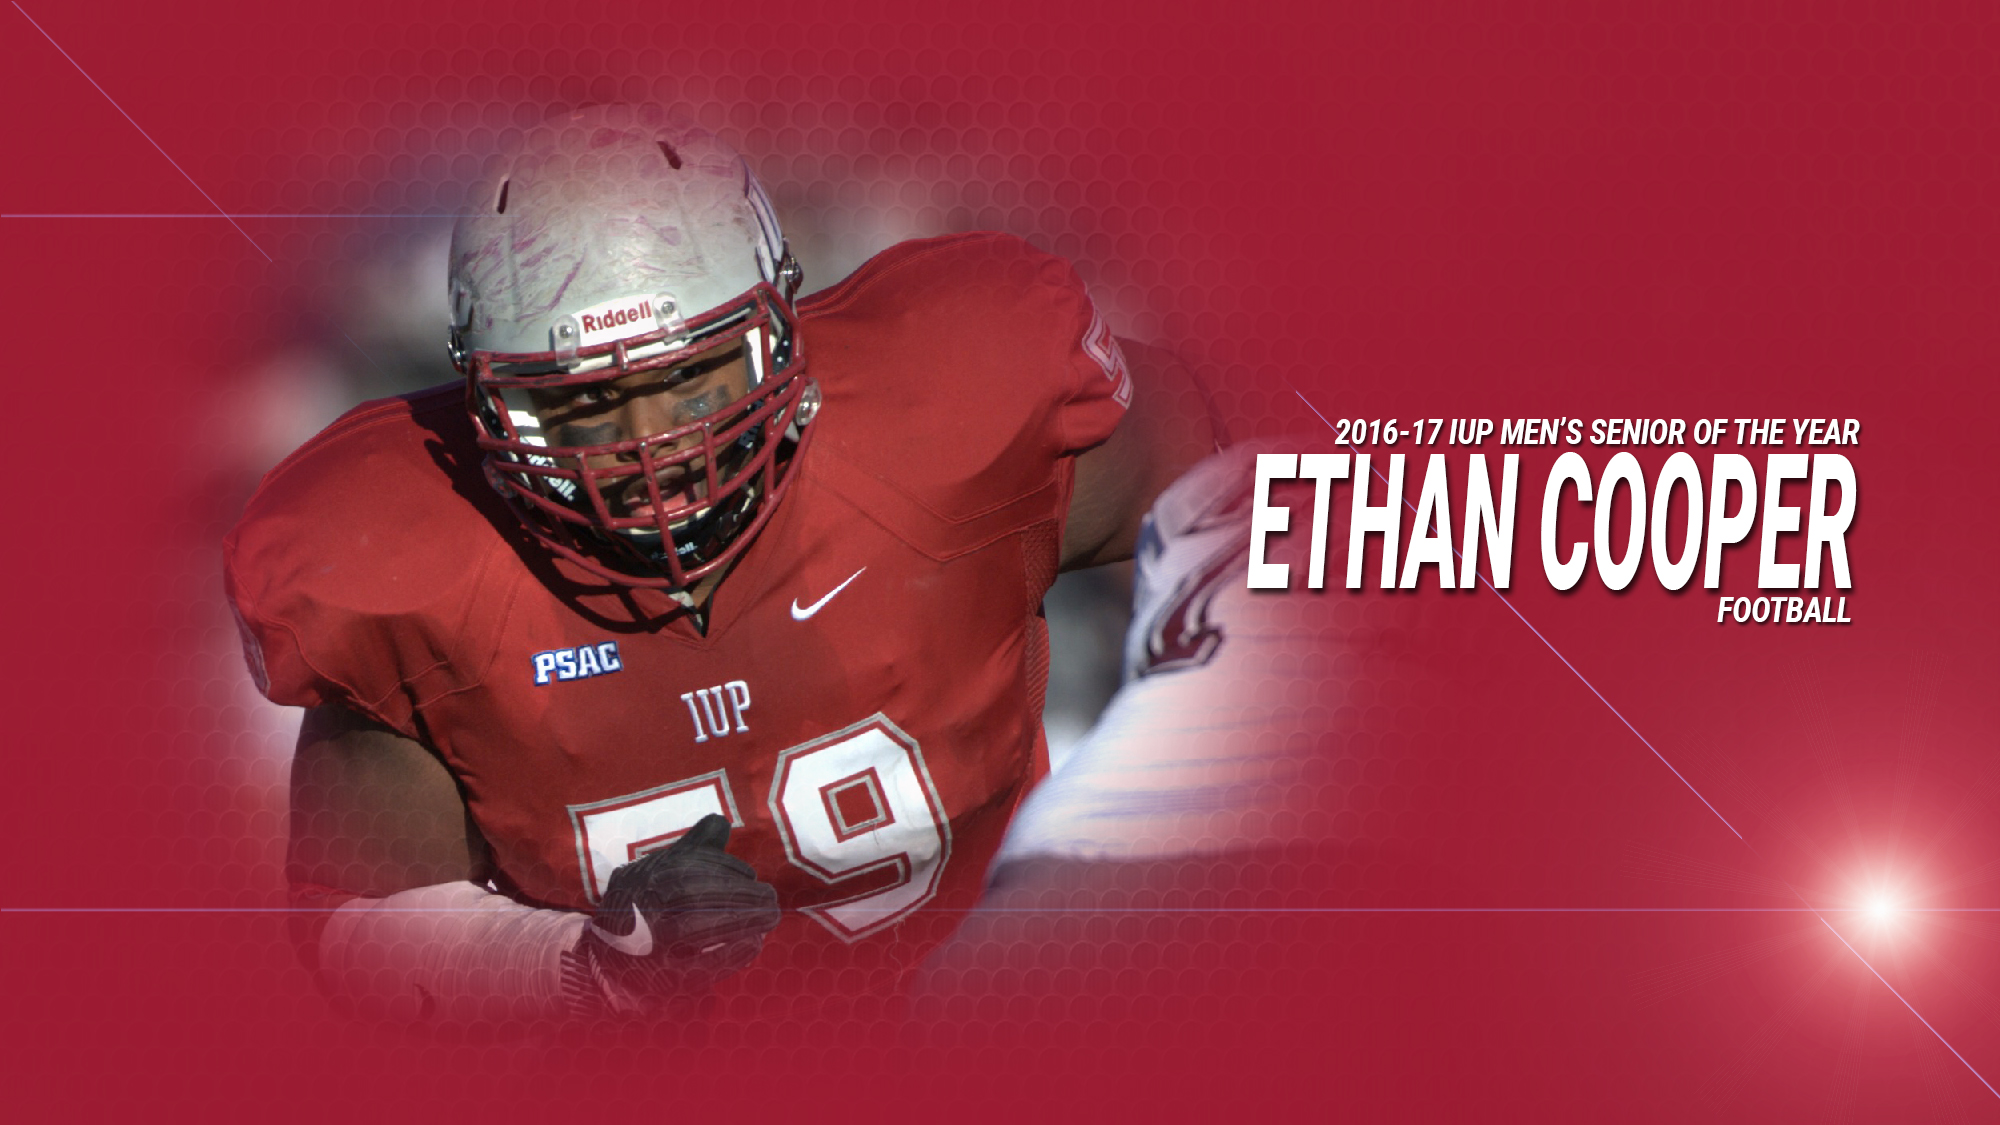 huge discount 7c32a f131f Ethan Cooper named IUP Men's Senior of the Year - Indiana ...